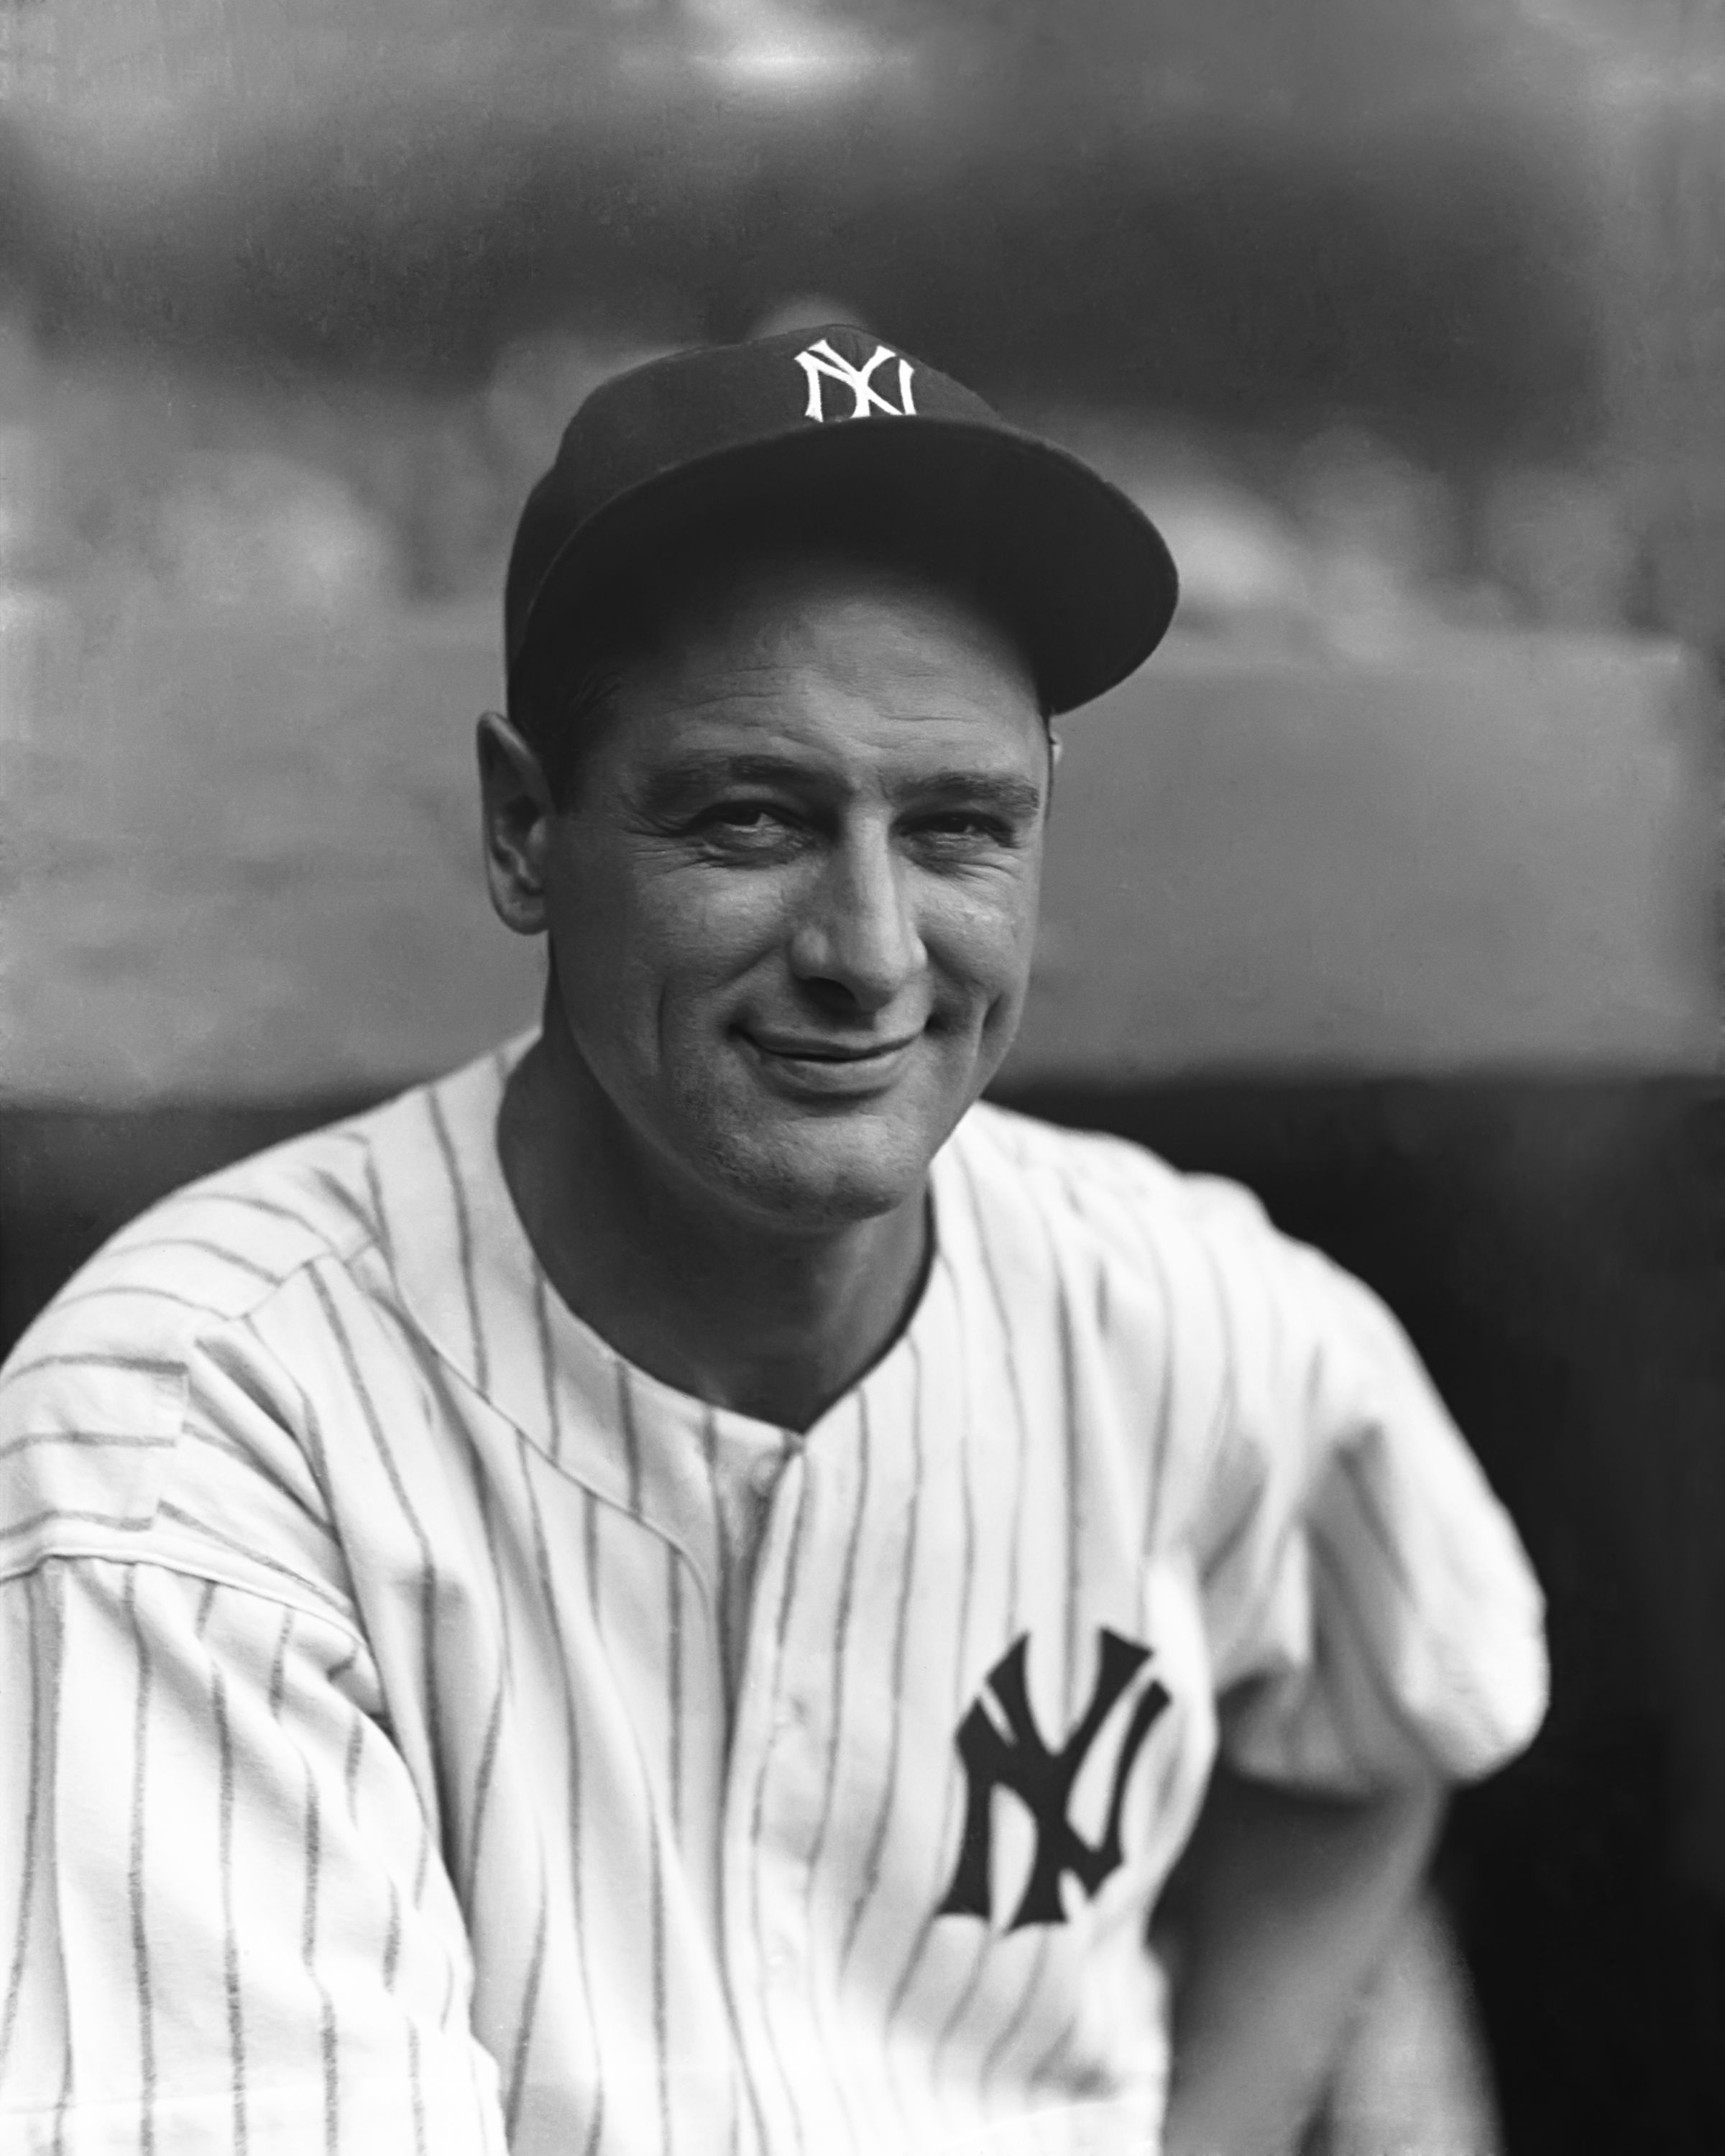 lou gehrig Lou gehrig: the inspirational story of baseball legend lou gehrig (lou gehrig unauthorized biography, new york yankees, mlb books) may 31, 2014.